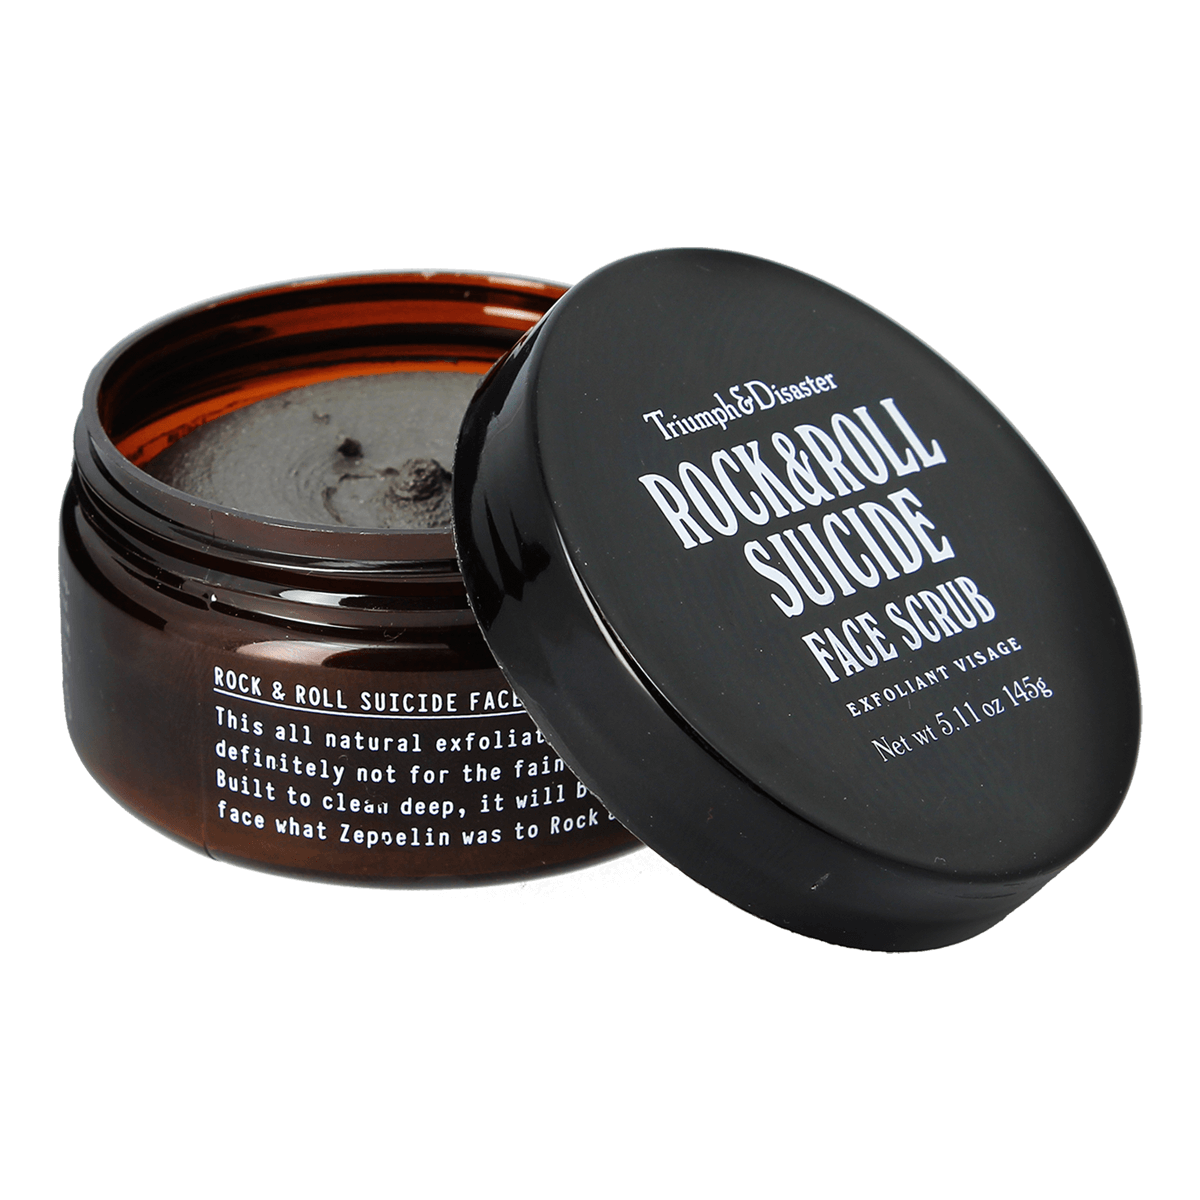 Triumph & Disaster Rock & Roll Face Scrub 145g